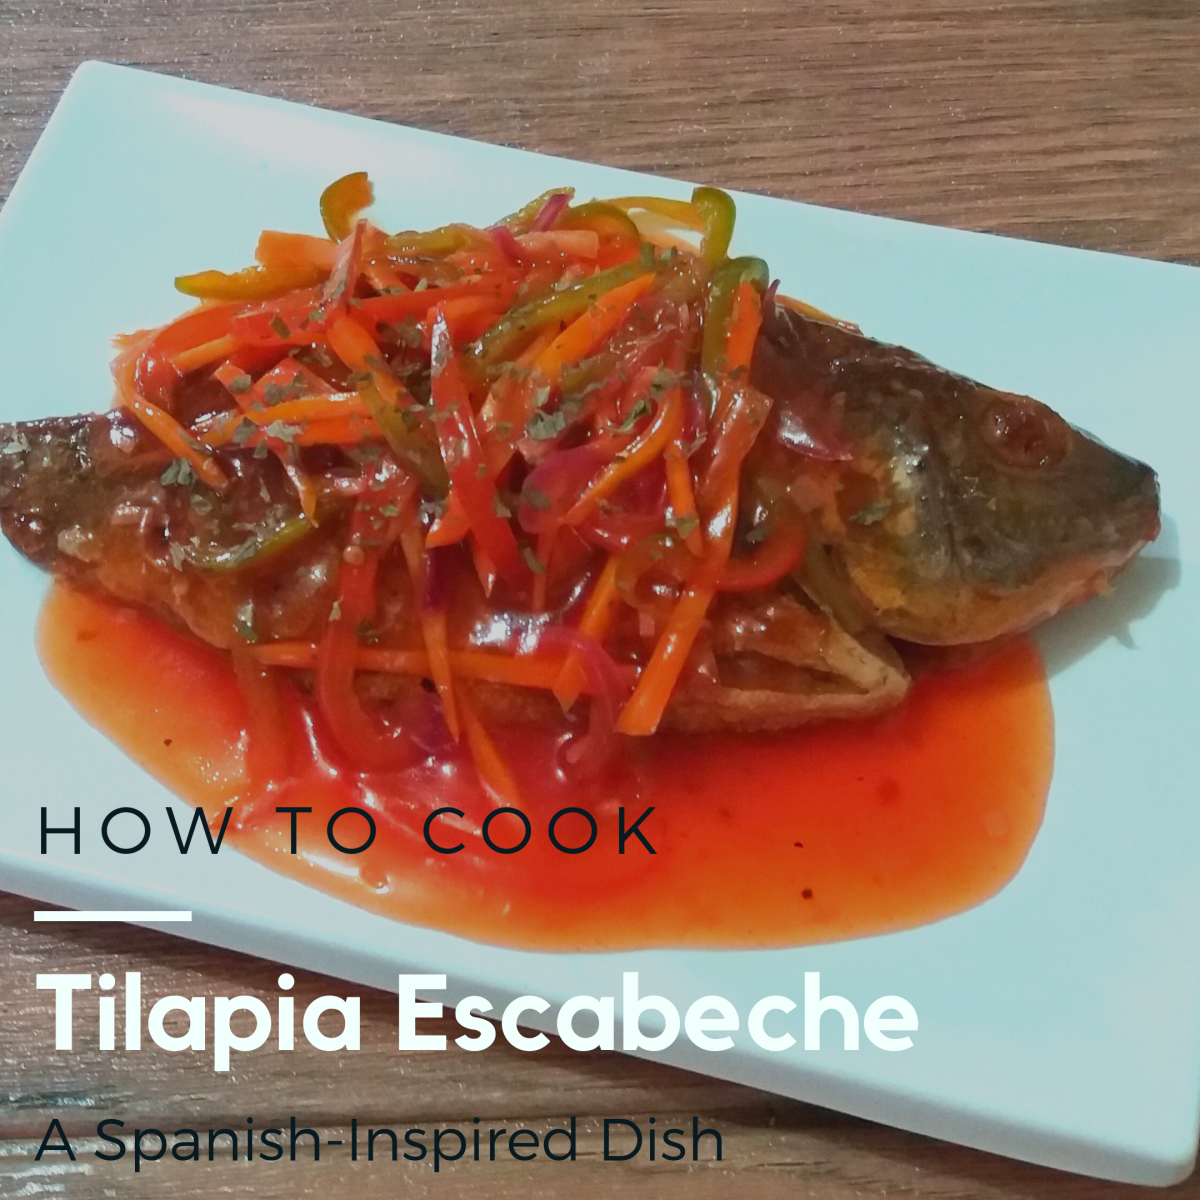 How to Cook Tilapia Escabeche: A Spanish-Inspired Dish